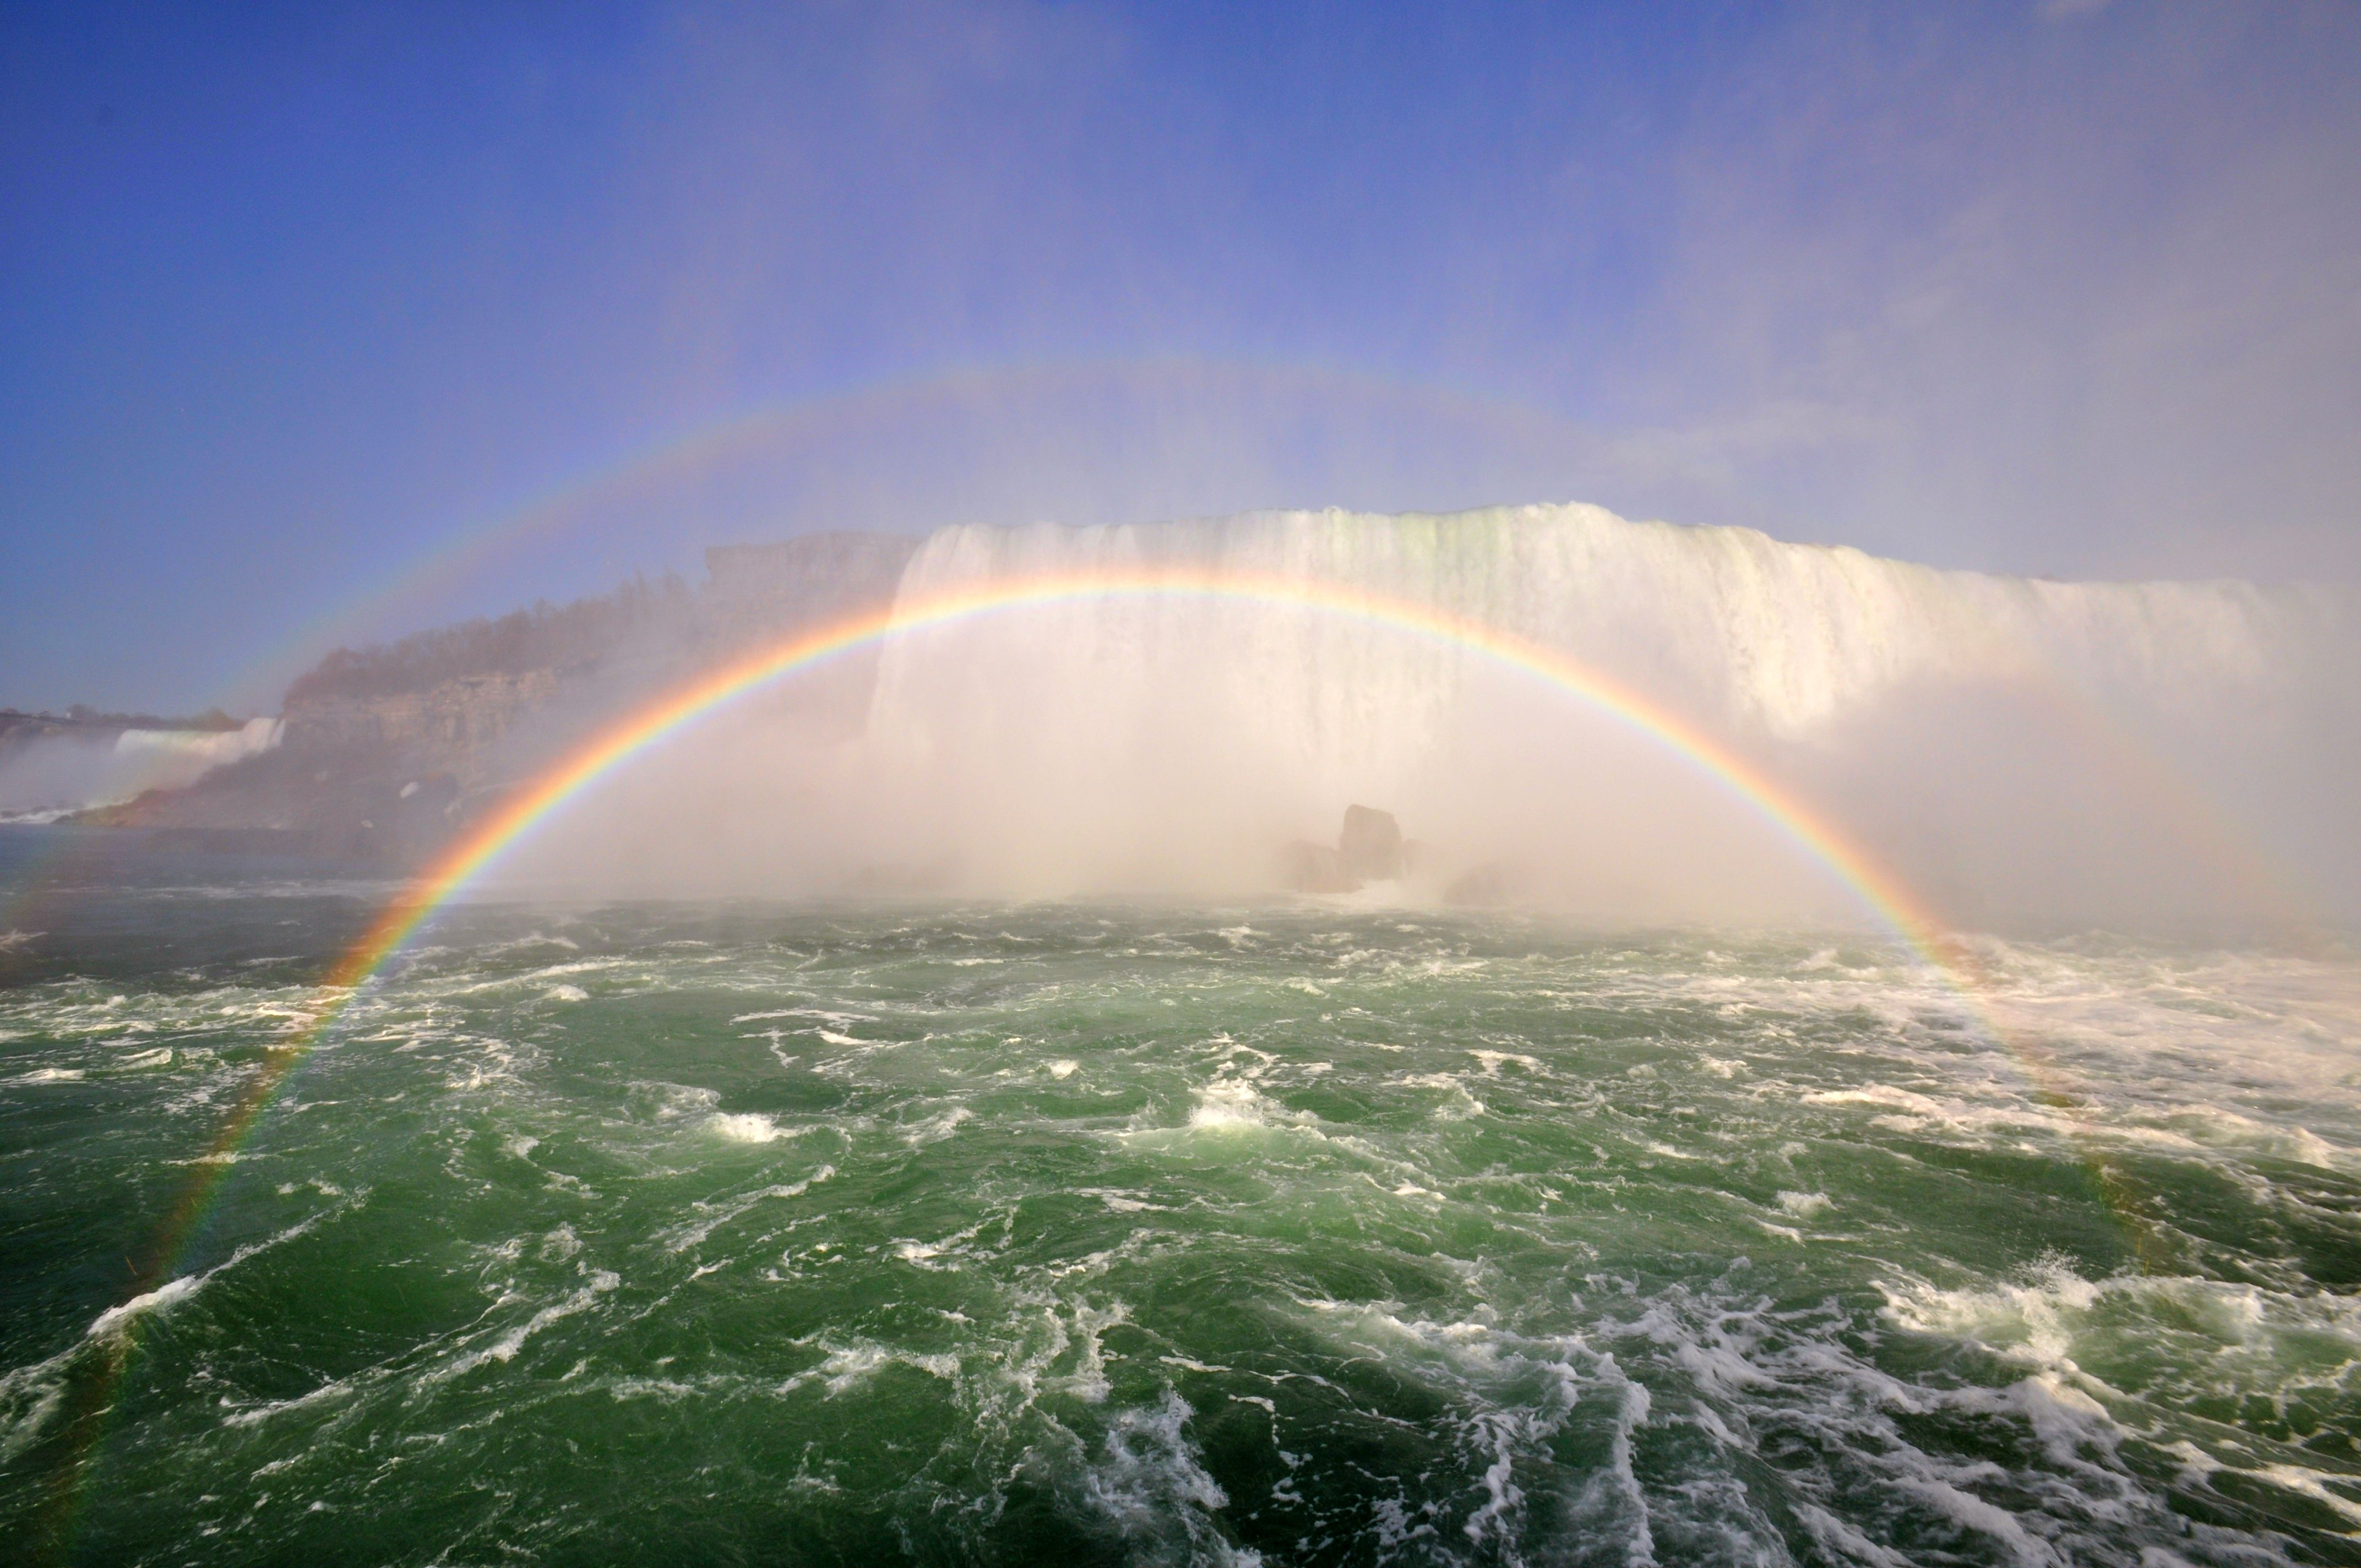 Double rainbow with Niagara Falls. Credit: Wikimedia Commons